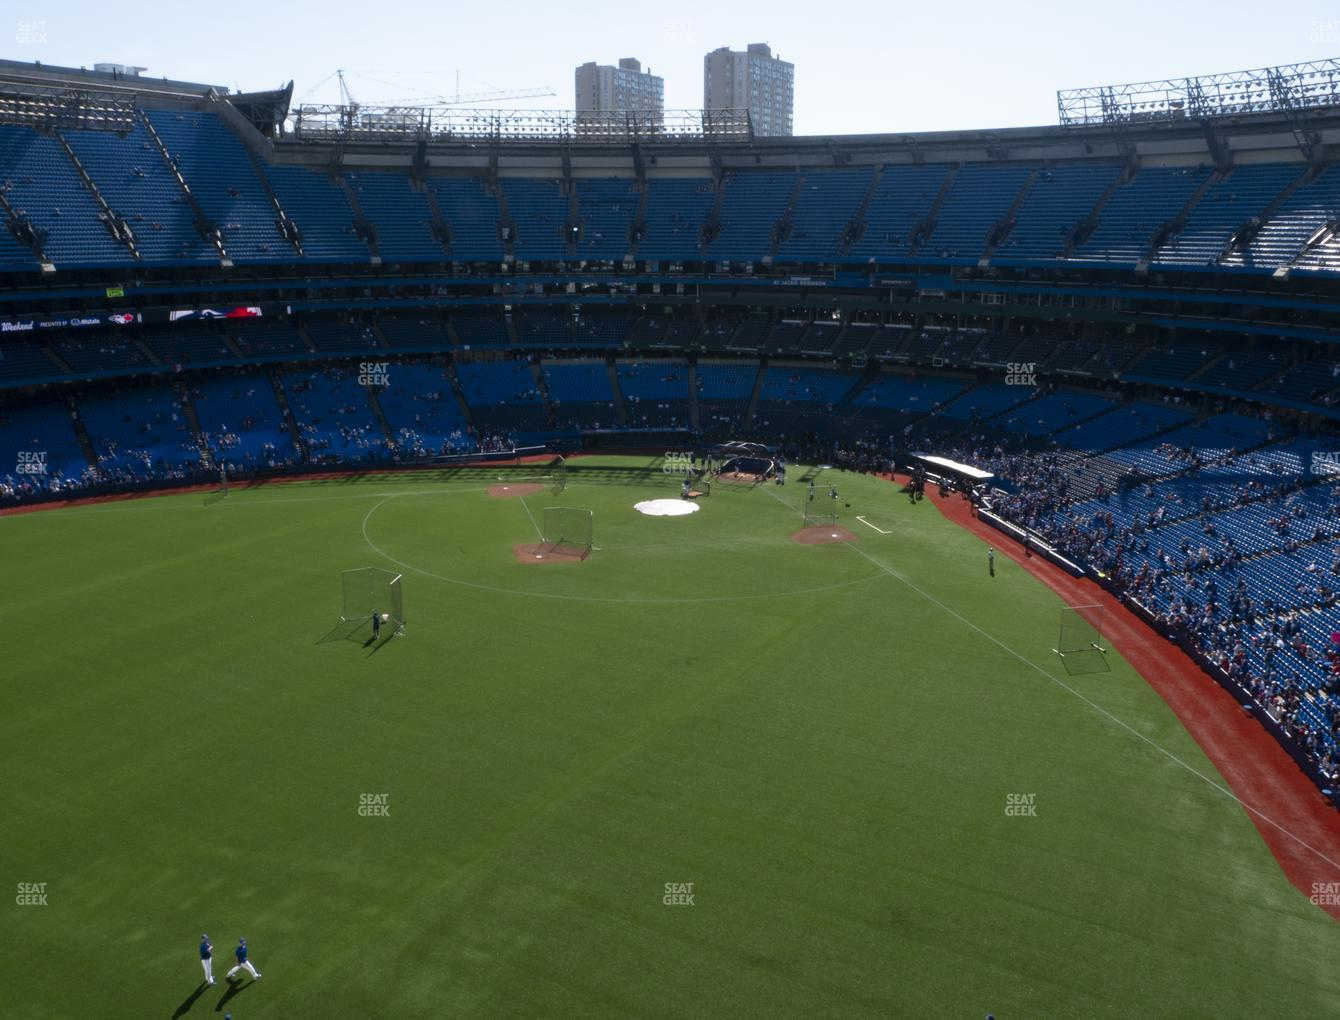 Toronto Blue Jays at Rogers Centre Section 543 R View